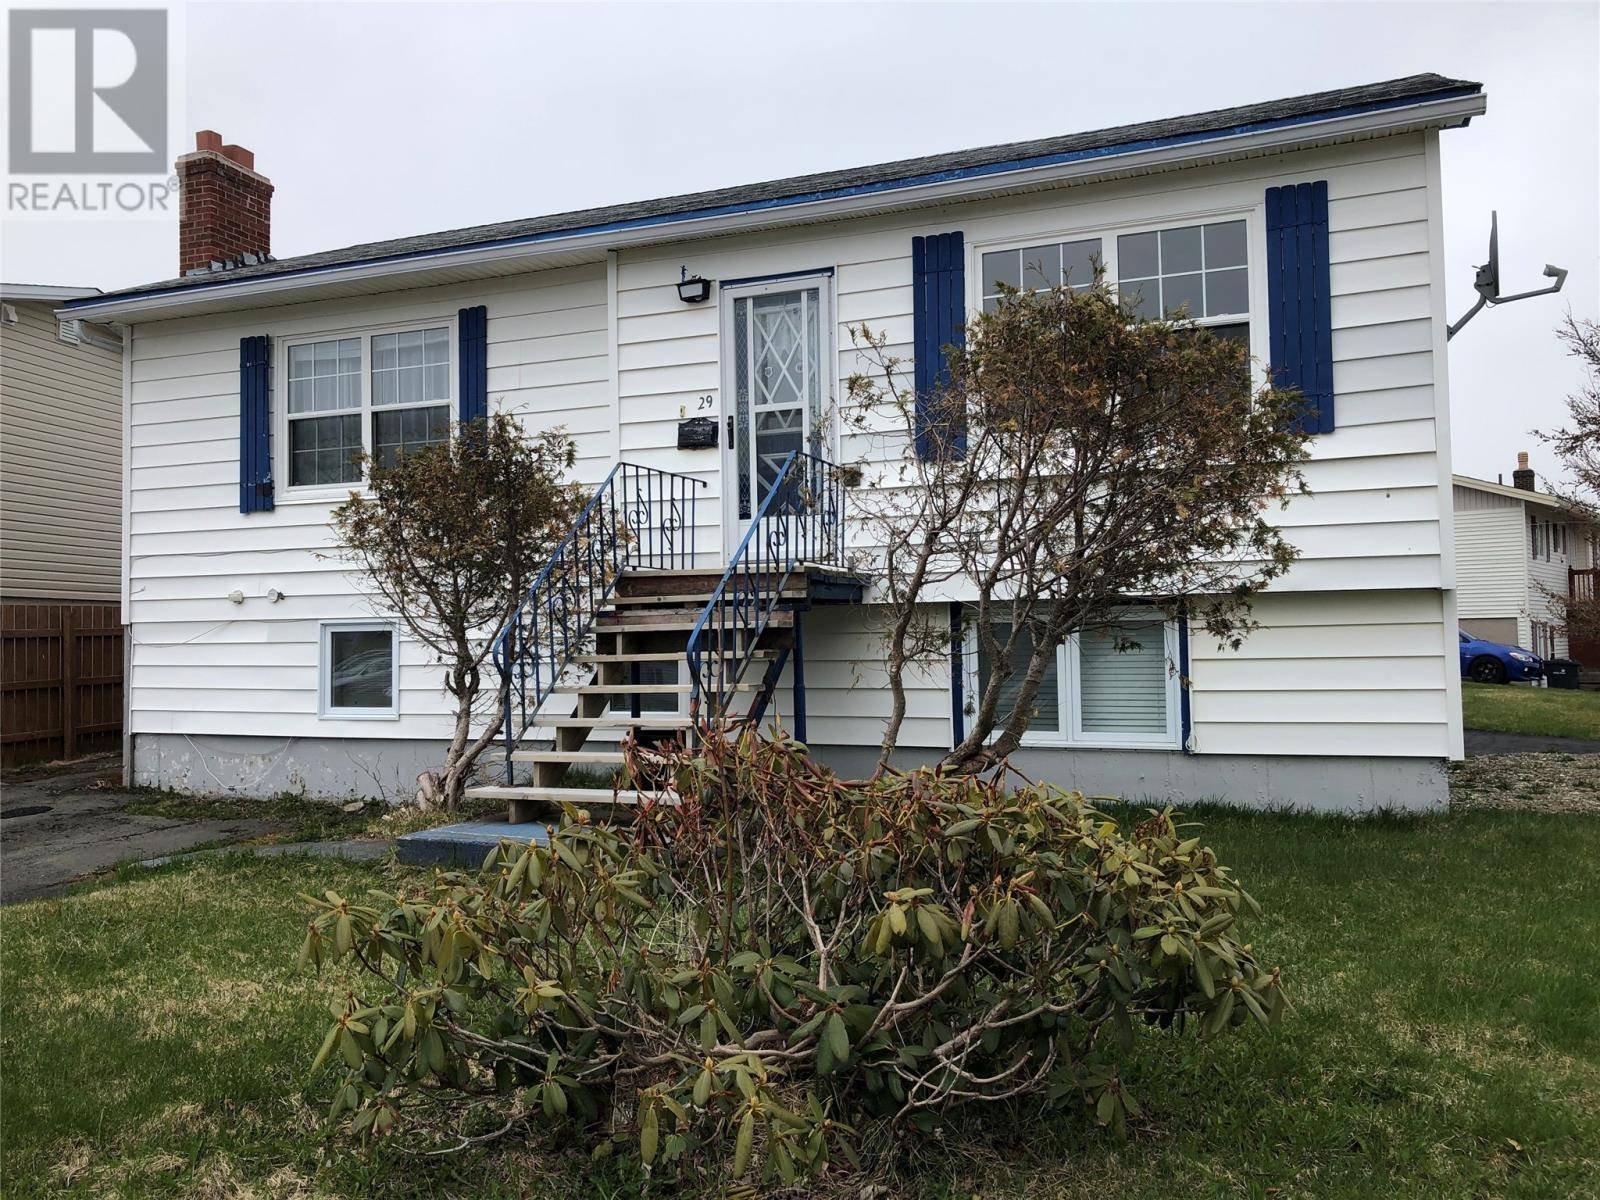 House for sale at 29 Burrage Ave Mount Pearl Newfoundland - MLS: 1196582